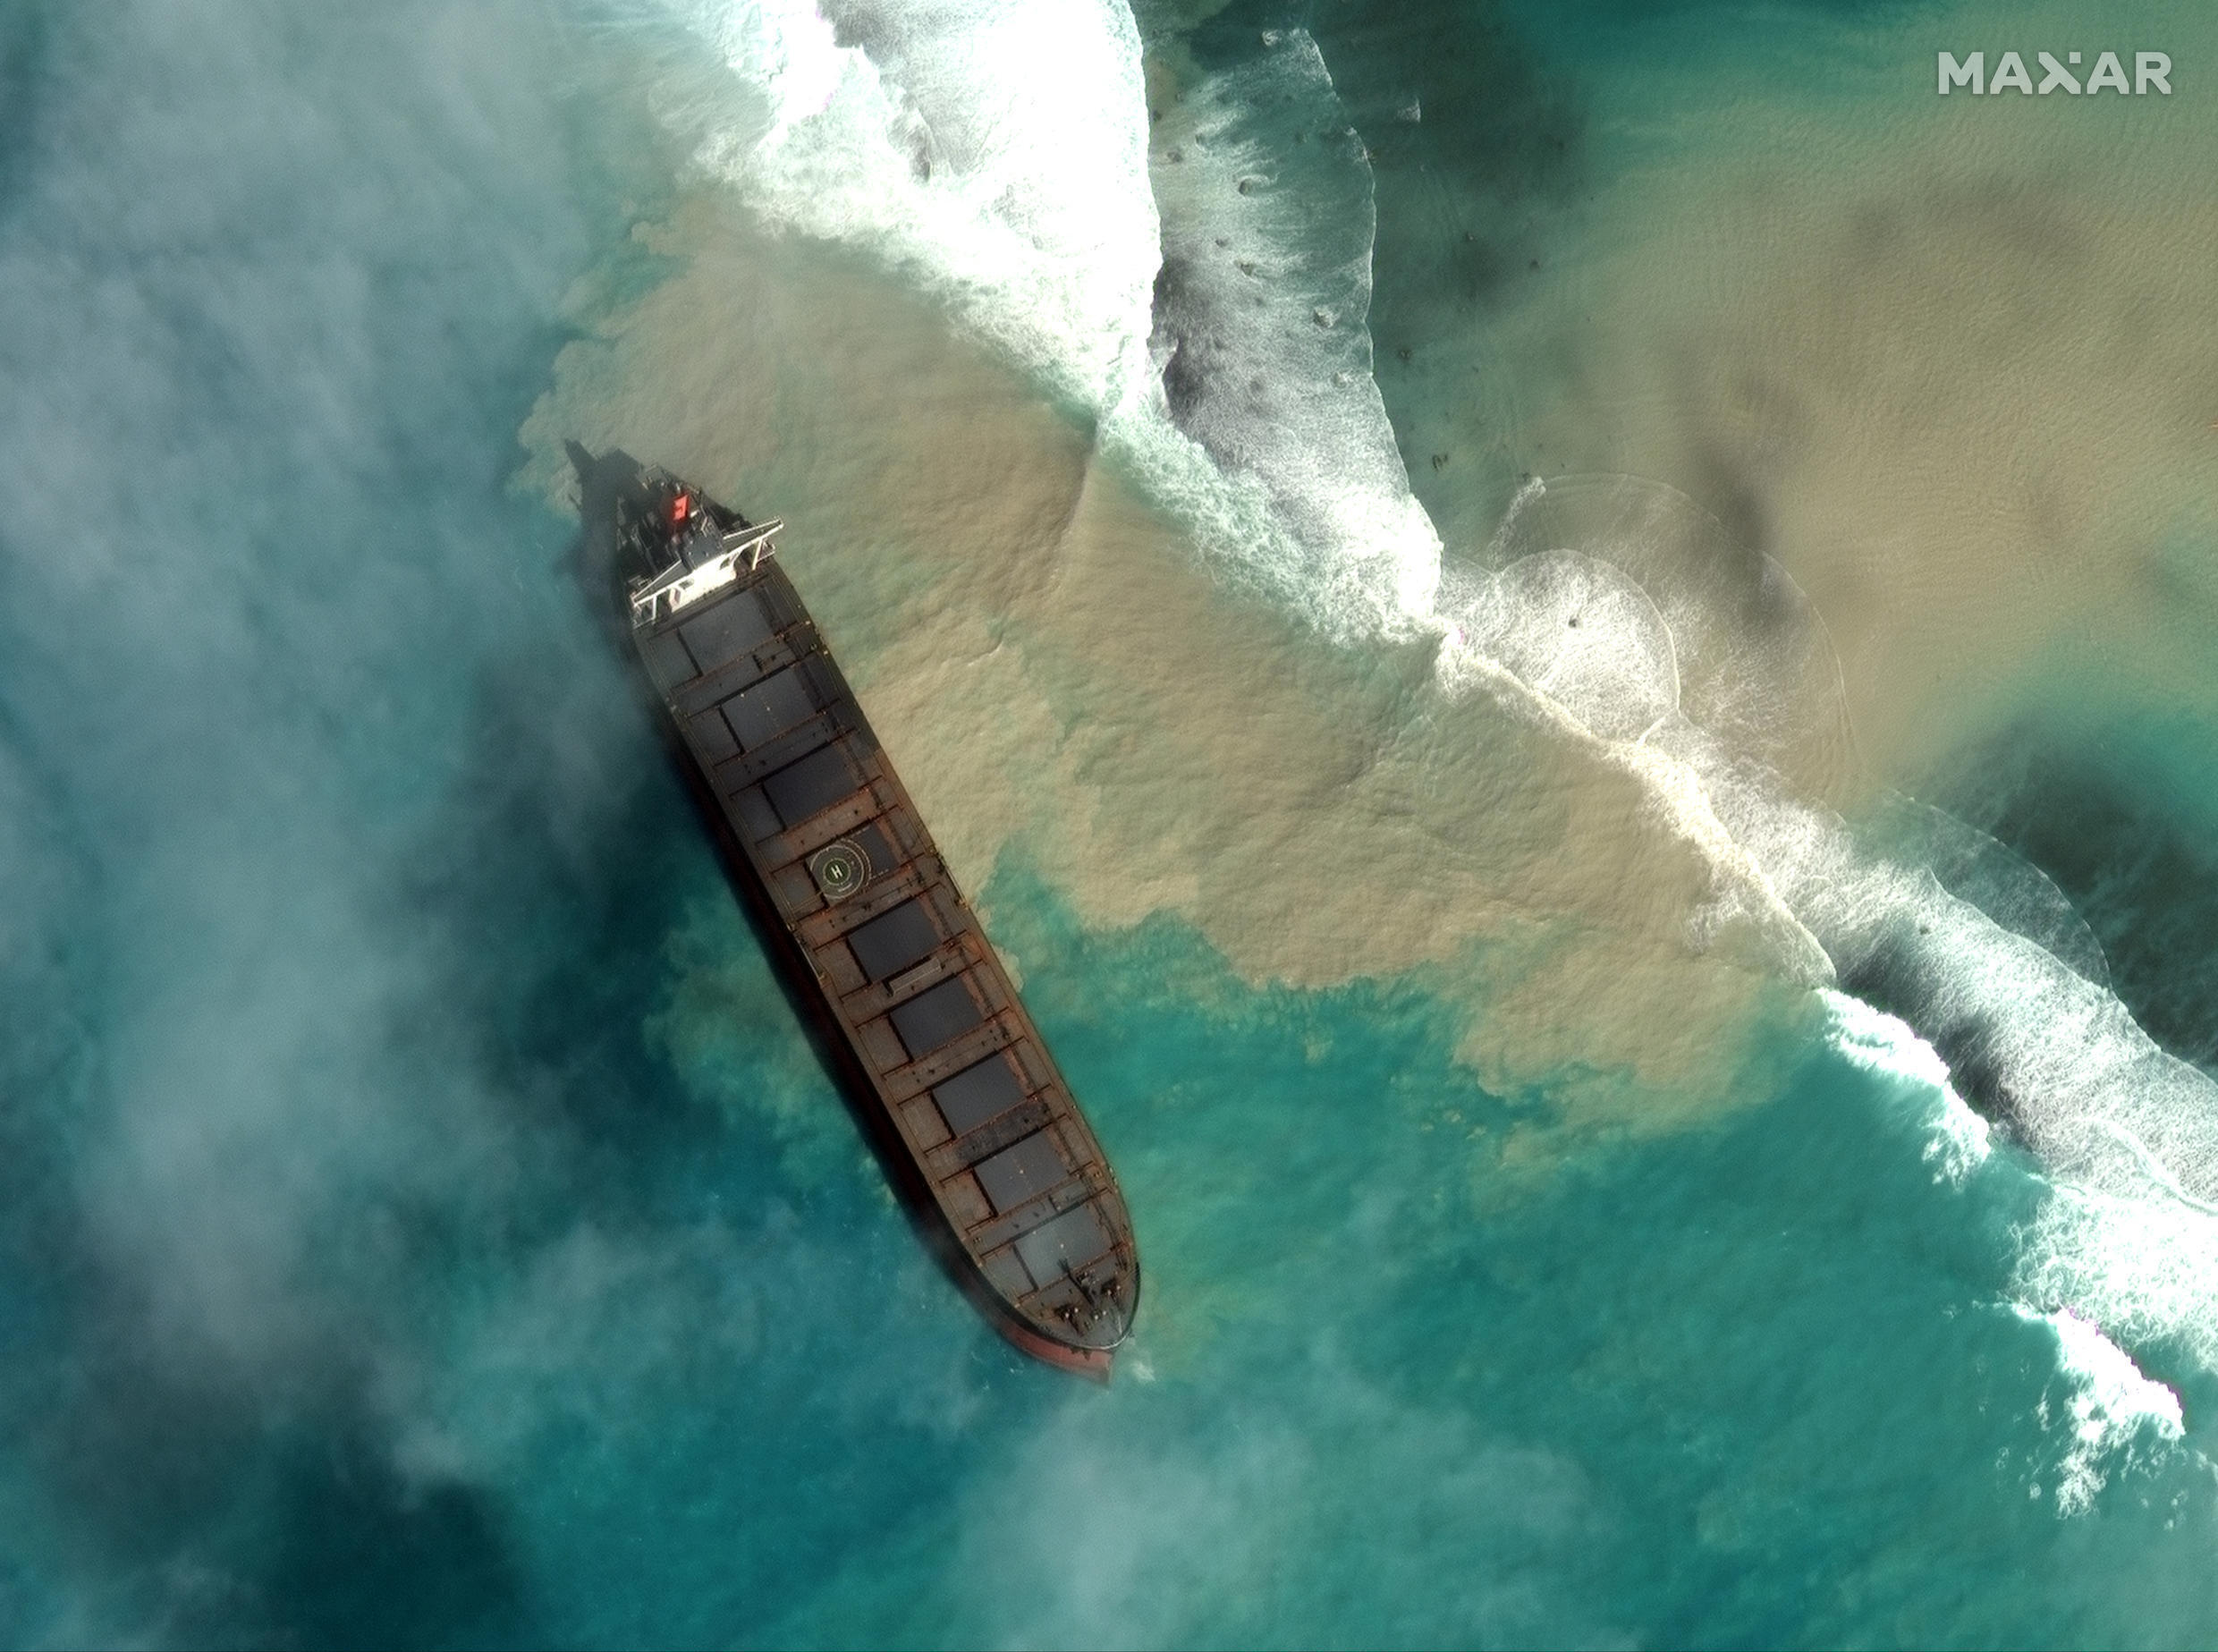 The bulk carrier MV Wakashio ran aground on July 25, but it was not until several days before the Mauritian authorities noticed that tons of oil